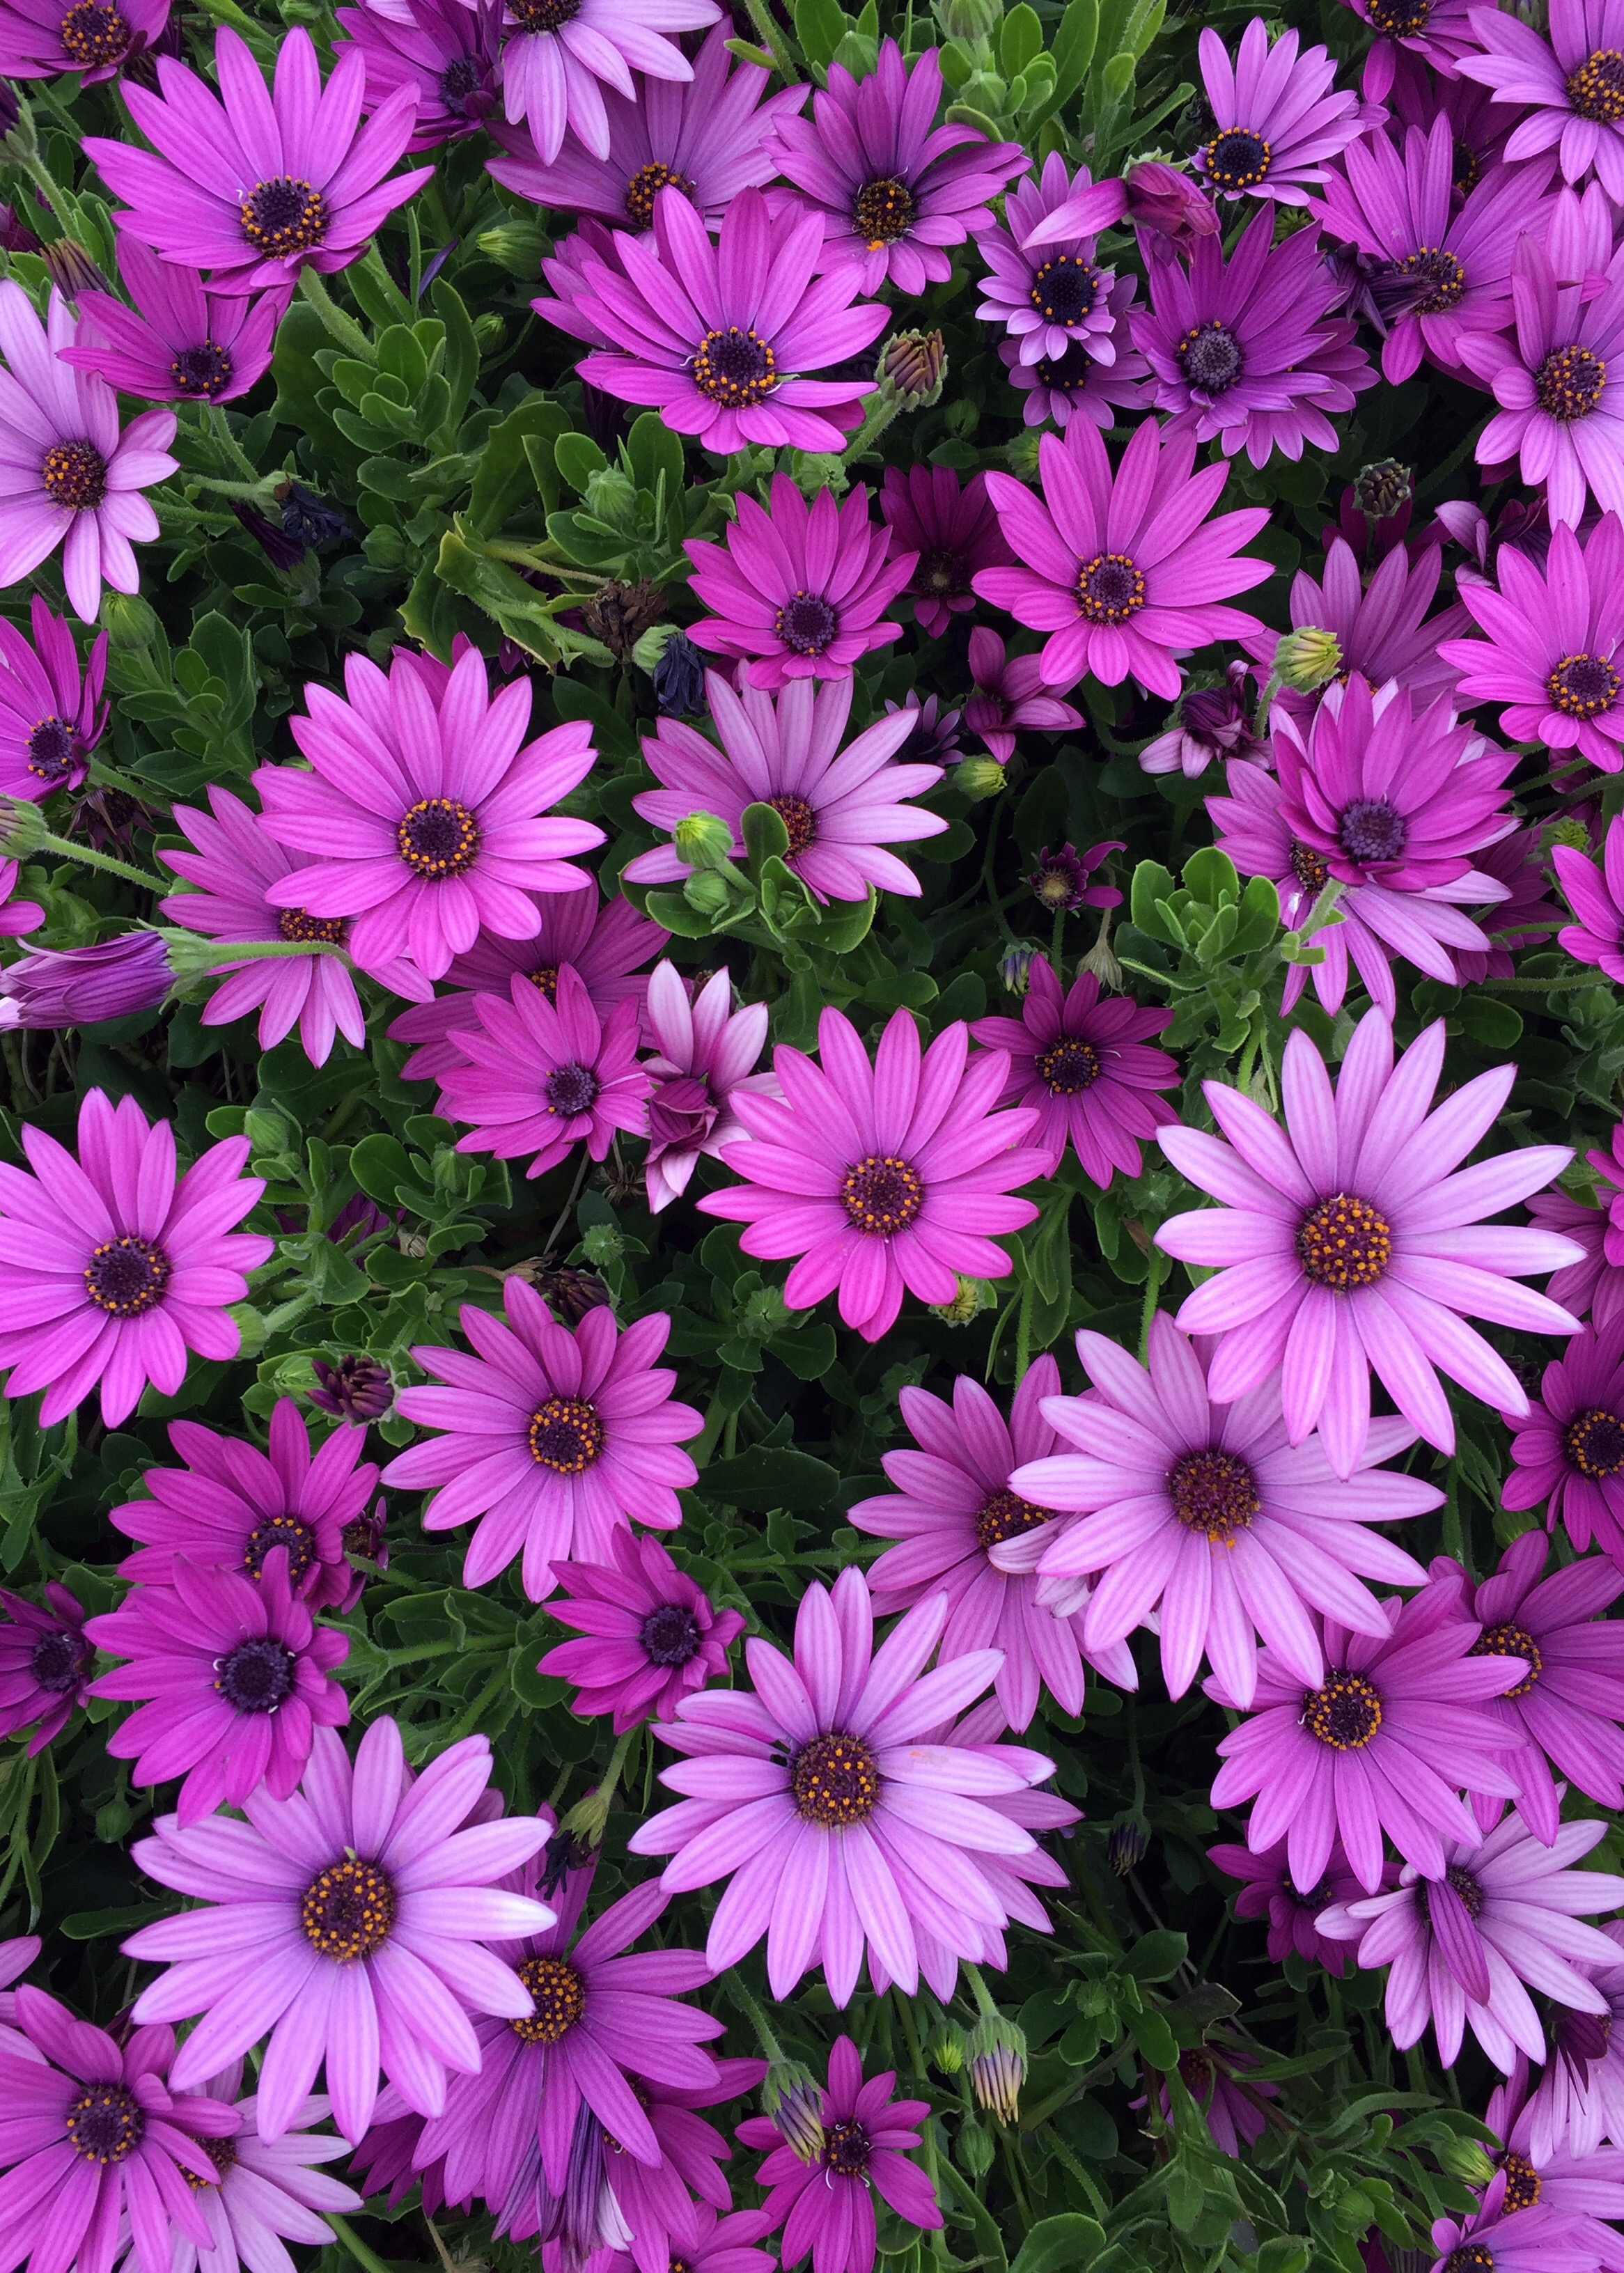 Daily flower candy osteospermum the frustrated gardener if you live by the coast or anywhere warm and dry then few plants are as colourful and rewarding so early in the season izmirmasajfo